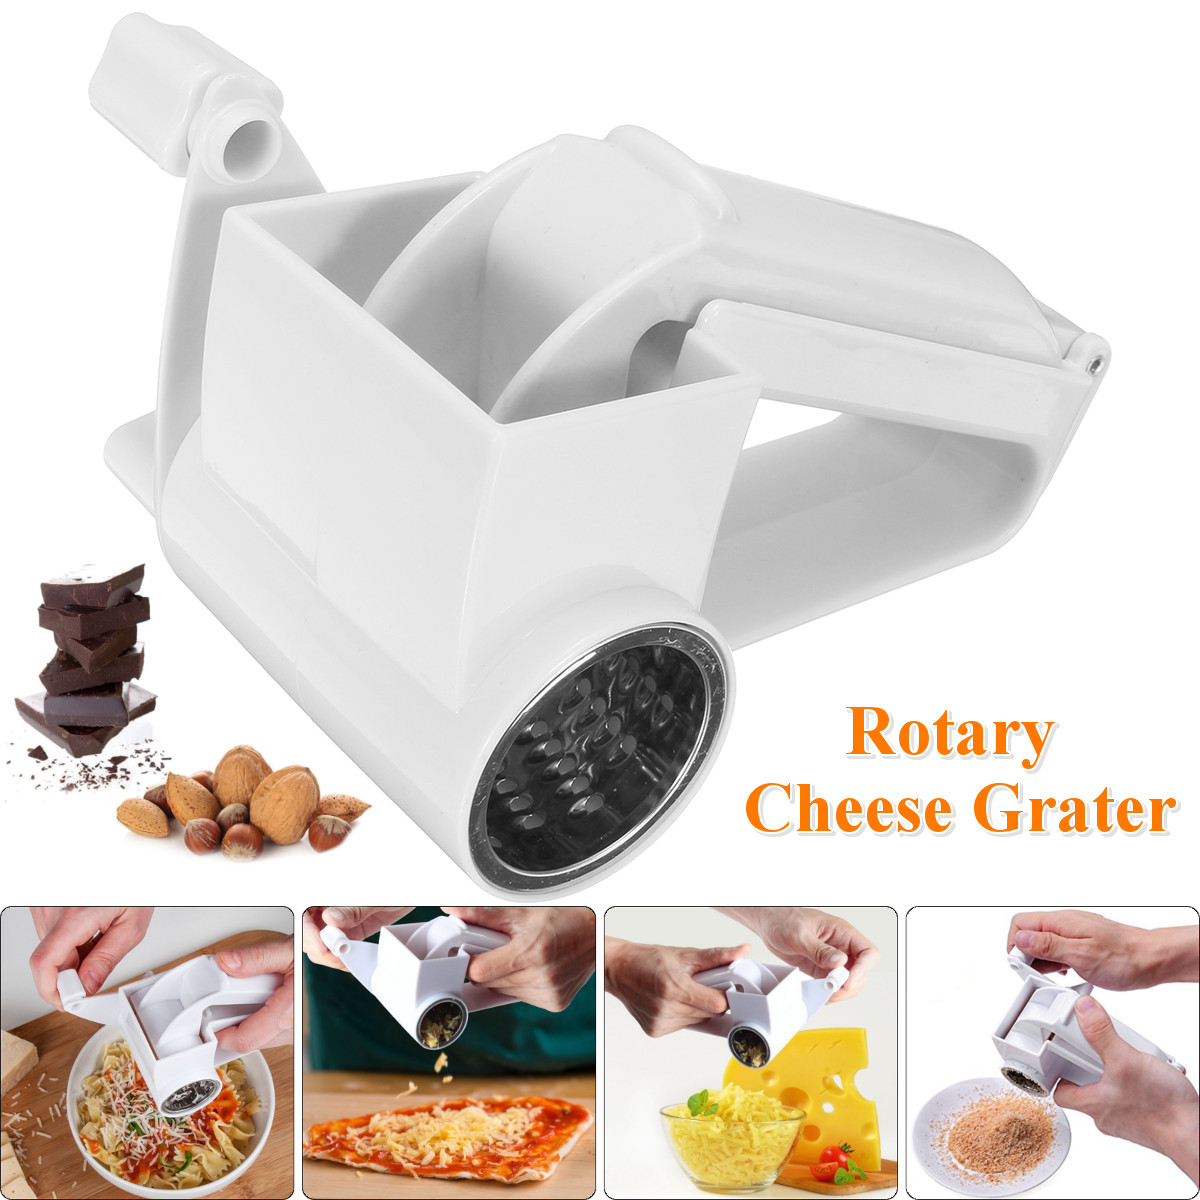 Rotary Cheese Grater Grates Hard Chocolate and Nuts Kitchen Tool